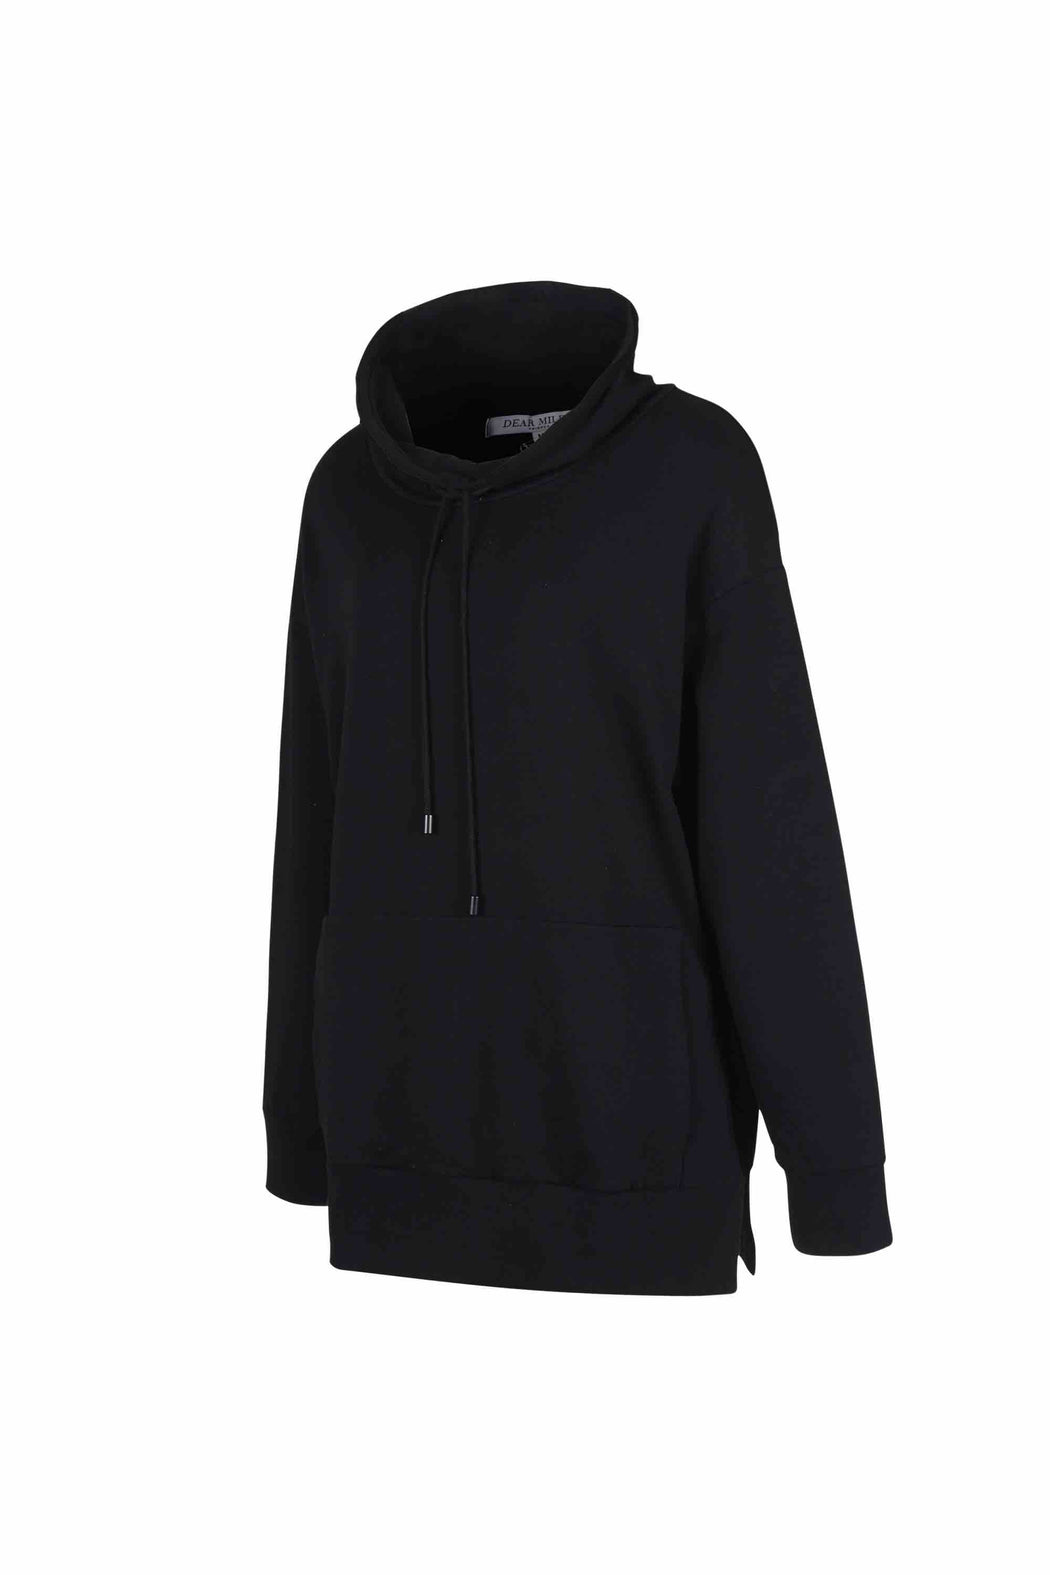 Side view of Women Draped Collar Pullover, made with Organic Cotton in Black